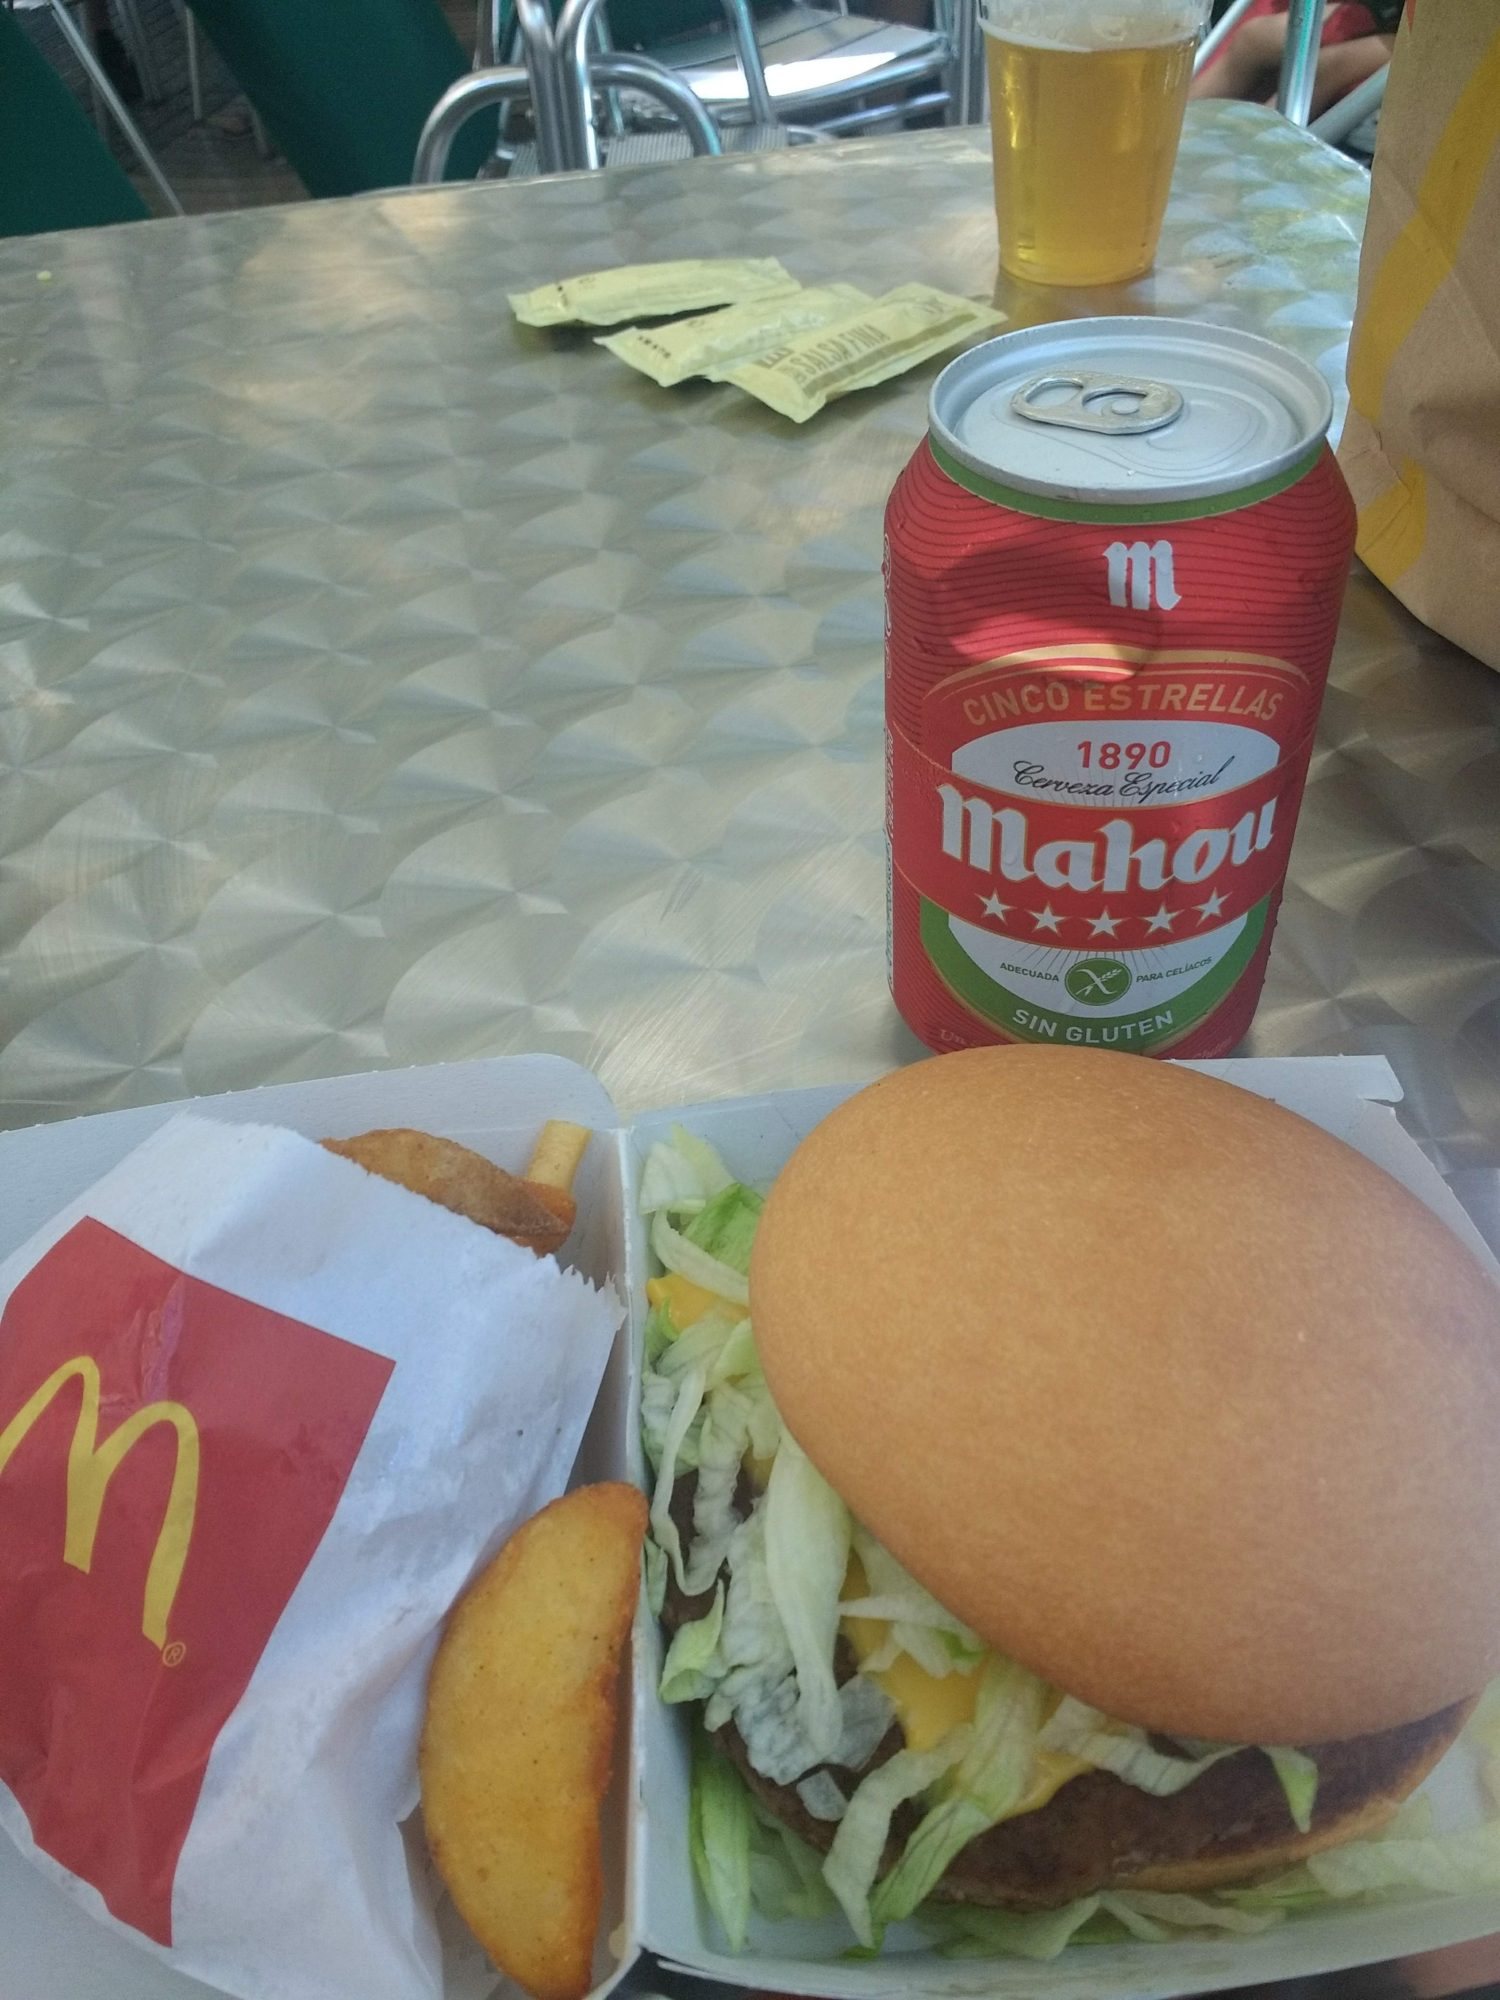 Gluten Free Big Mac at a Spanish Mcdonalds, served with patatas and a gluten free Mahou.